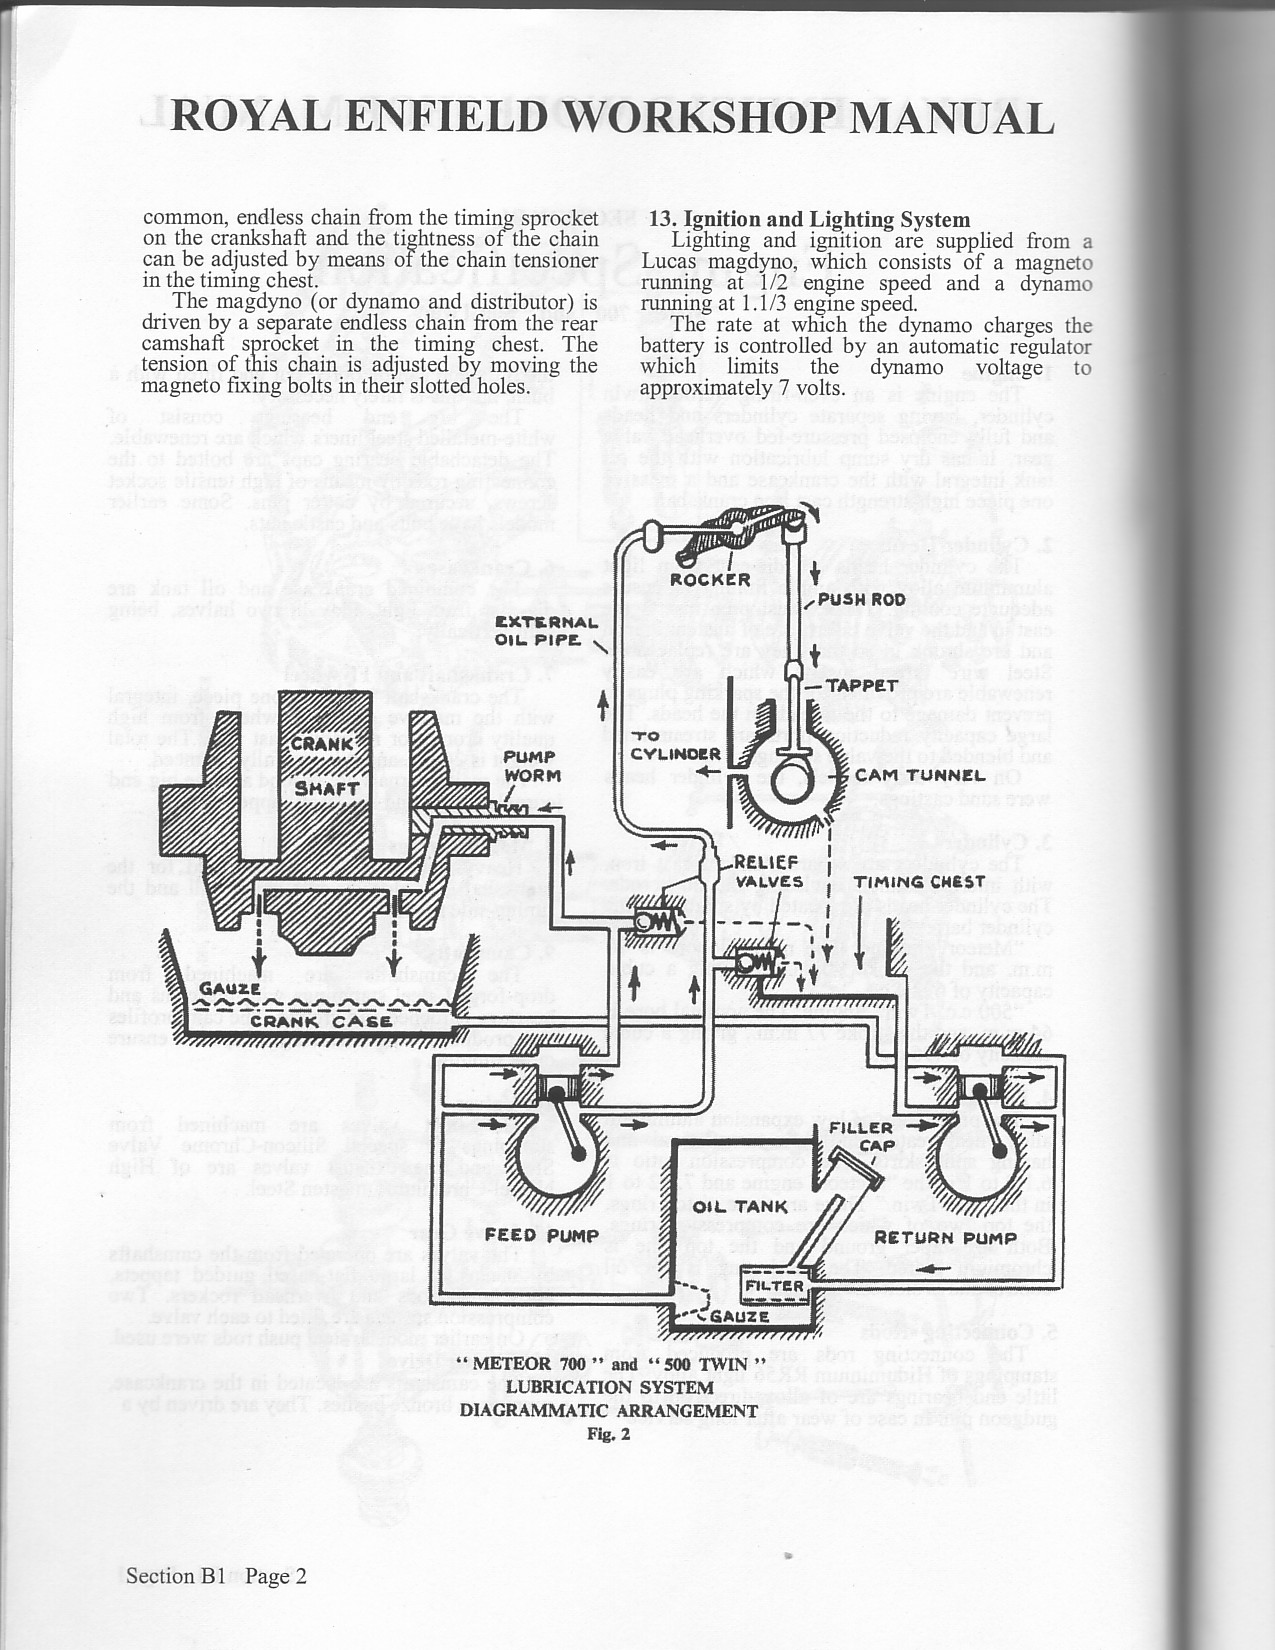 Return Oil Pump Replacement Piping Diagram Twin Tanks 43287 Kb 1275x1650 Viewed 269 Times